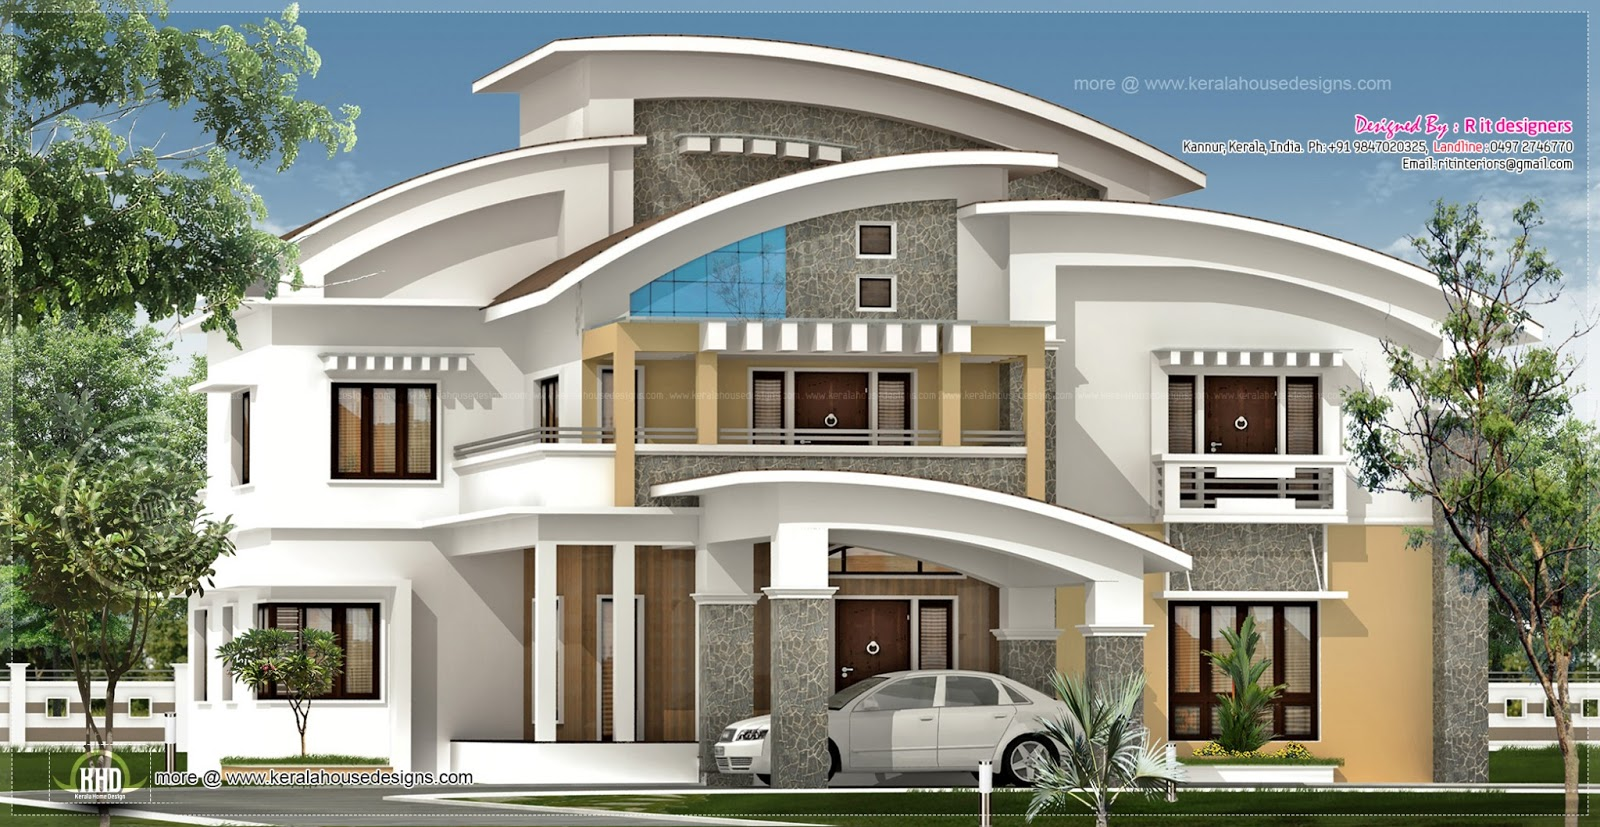 3750 Square Feet Luxury Villa Exterior Style House 3d Models: executive house designs